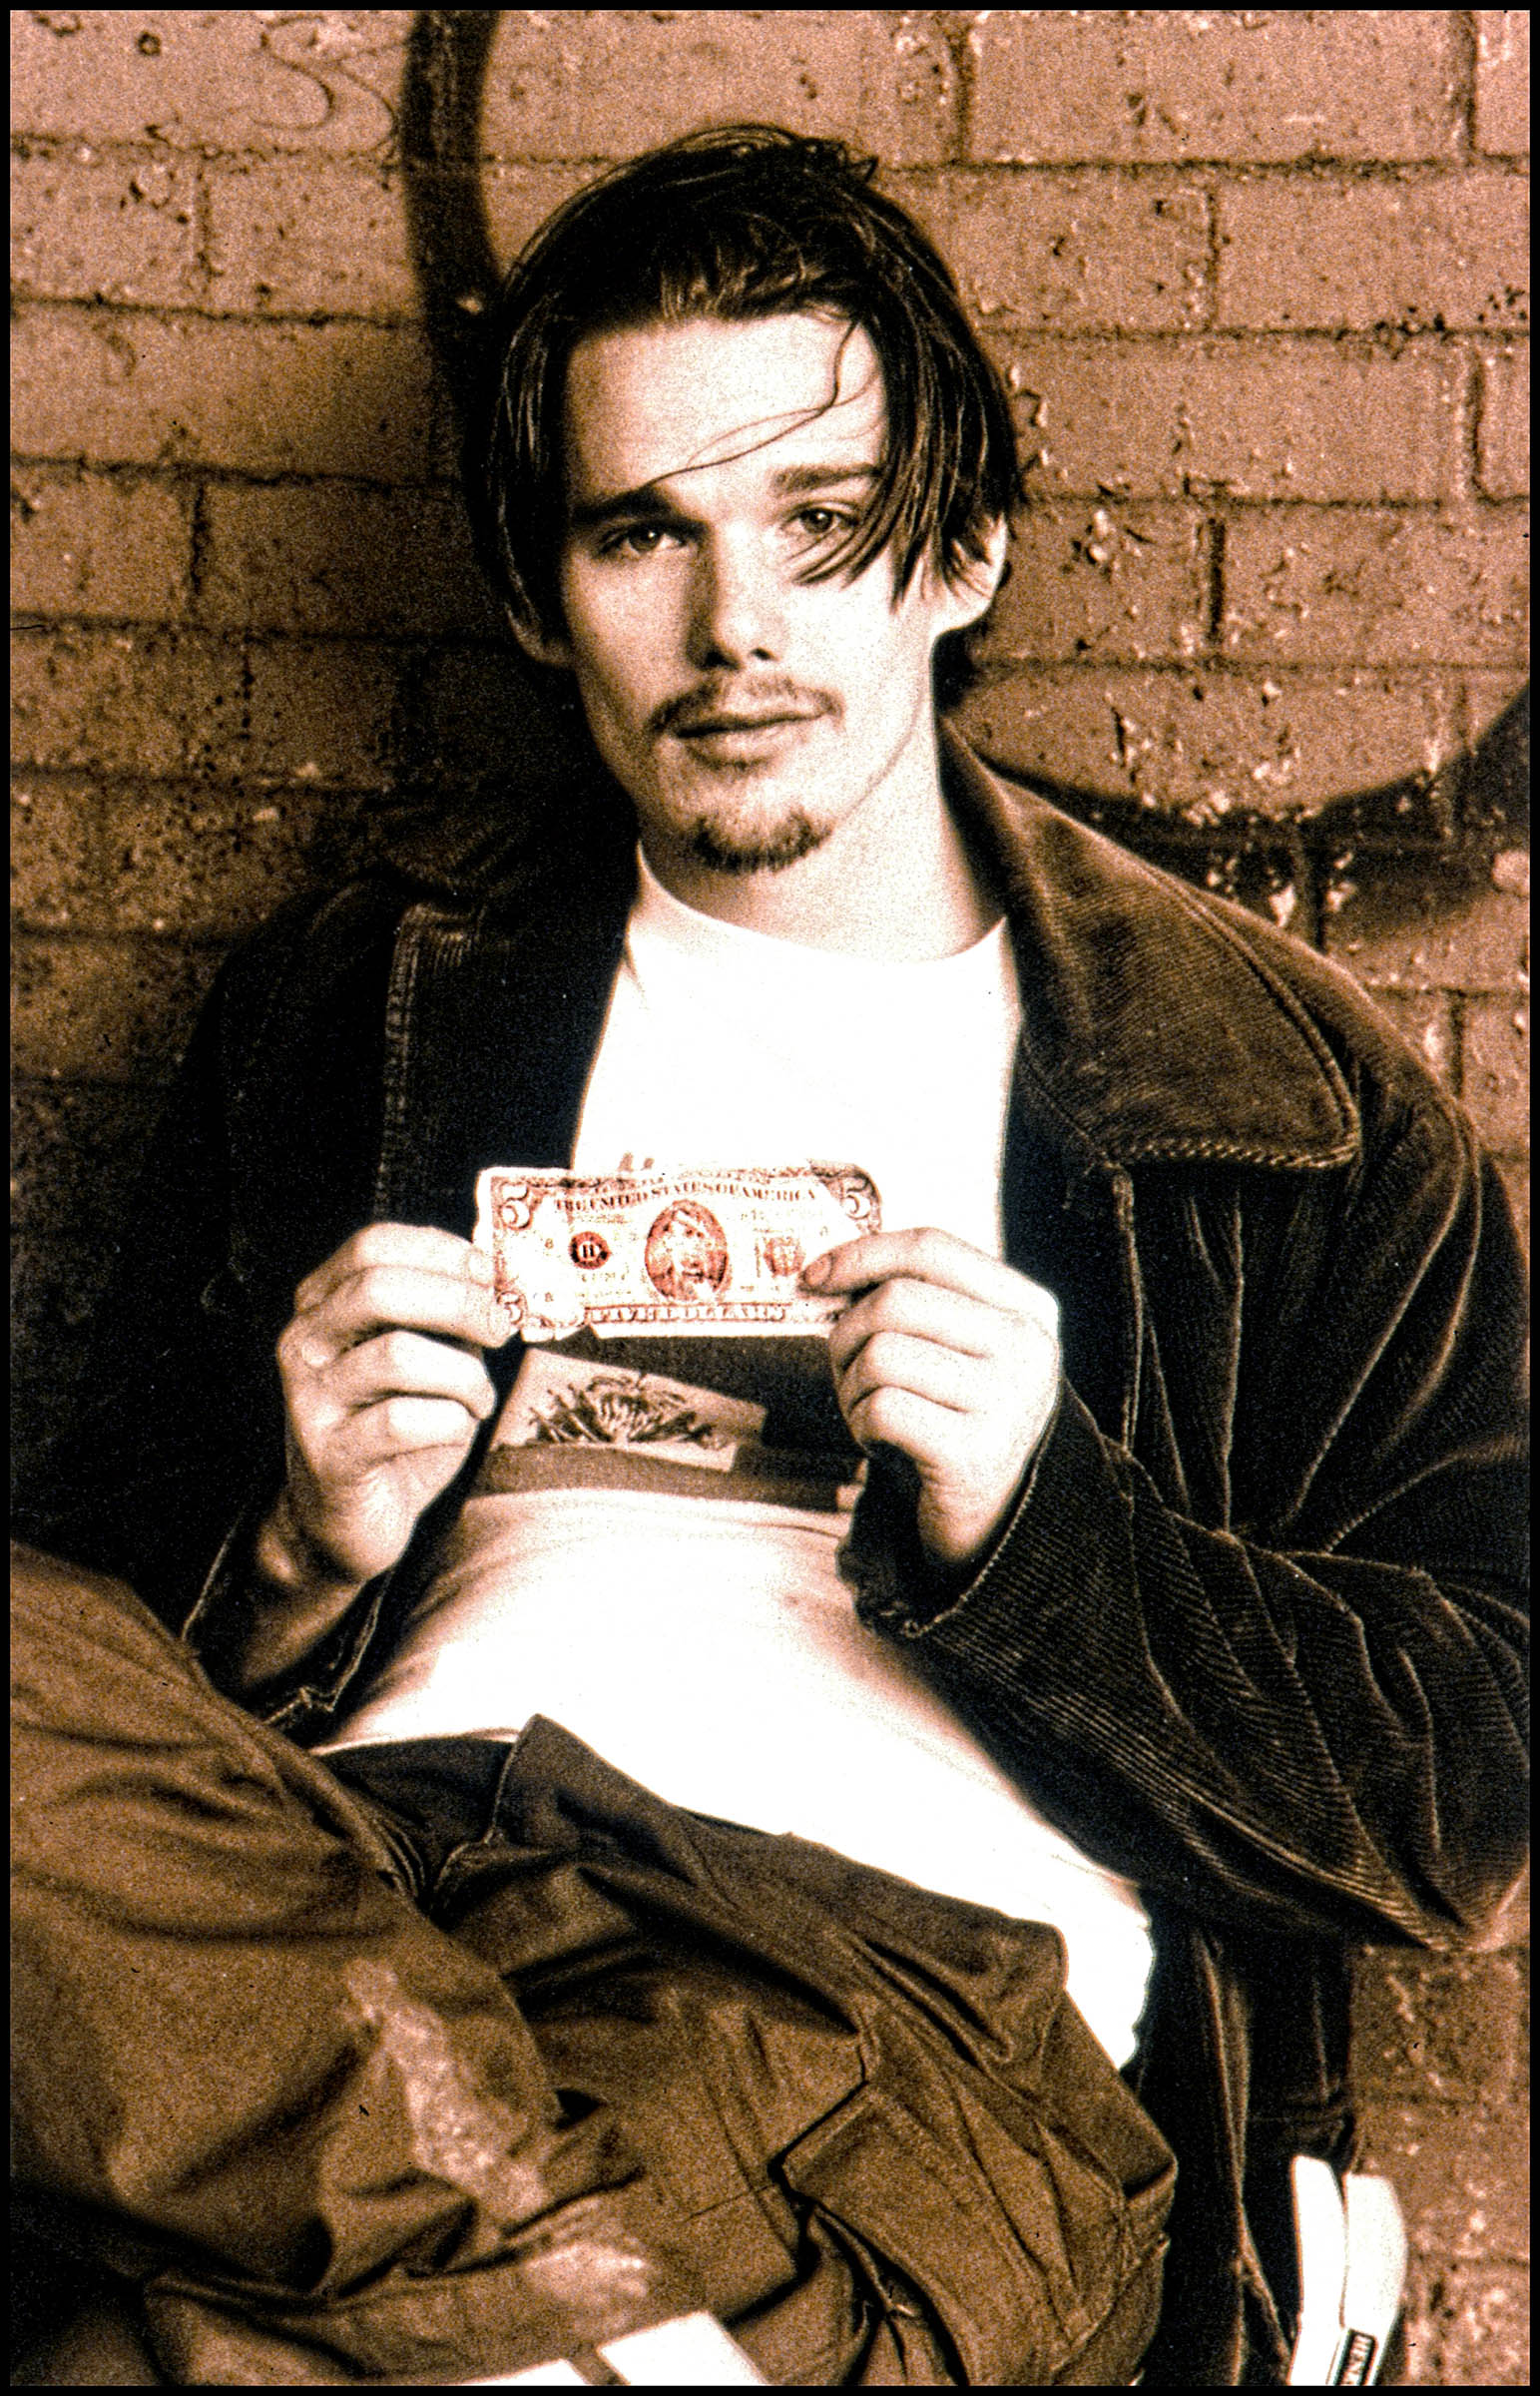 ETHANHAWKE_BestphotographerTessSteinkolknycportraitsheadshotphotographerinNewYorkCityWallStreetCEOportraitureactorsheadshotsPRProfilephotosmusicianNewYorkcorporateexecutivephotographywebsitelocationstudioinNYC